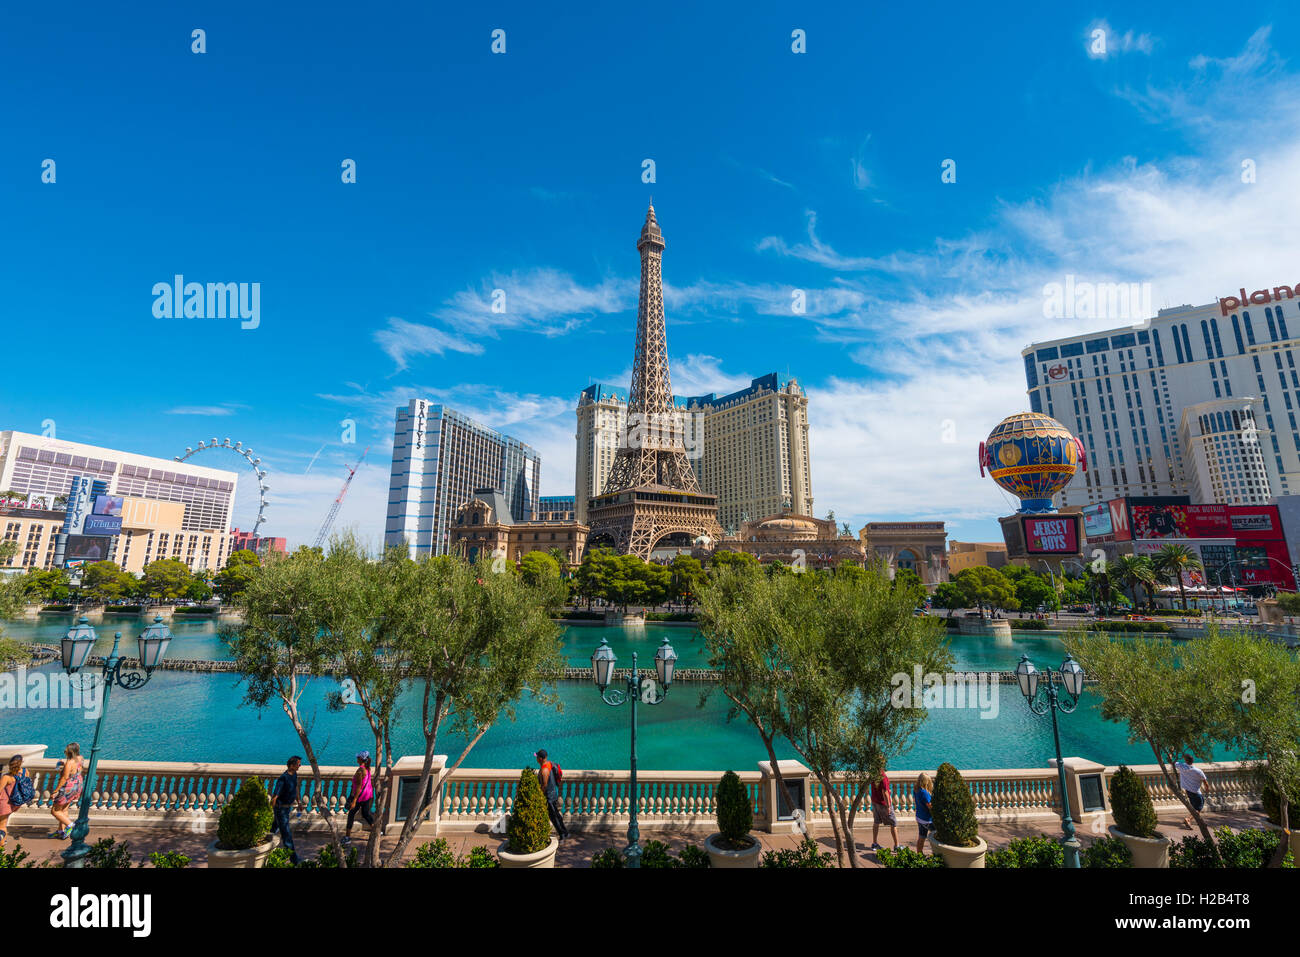 Replica of Eiffel Tower, Paris Hotel and lake in front of Bellagio Hotel, Las Vegas, Nevada, USA - Stock Image